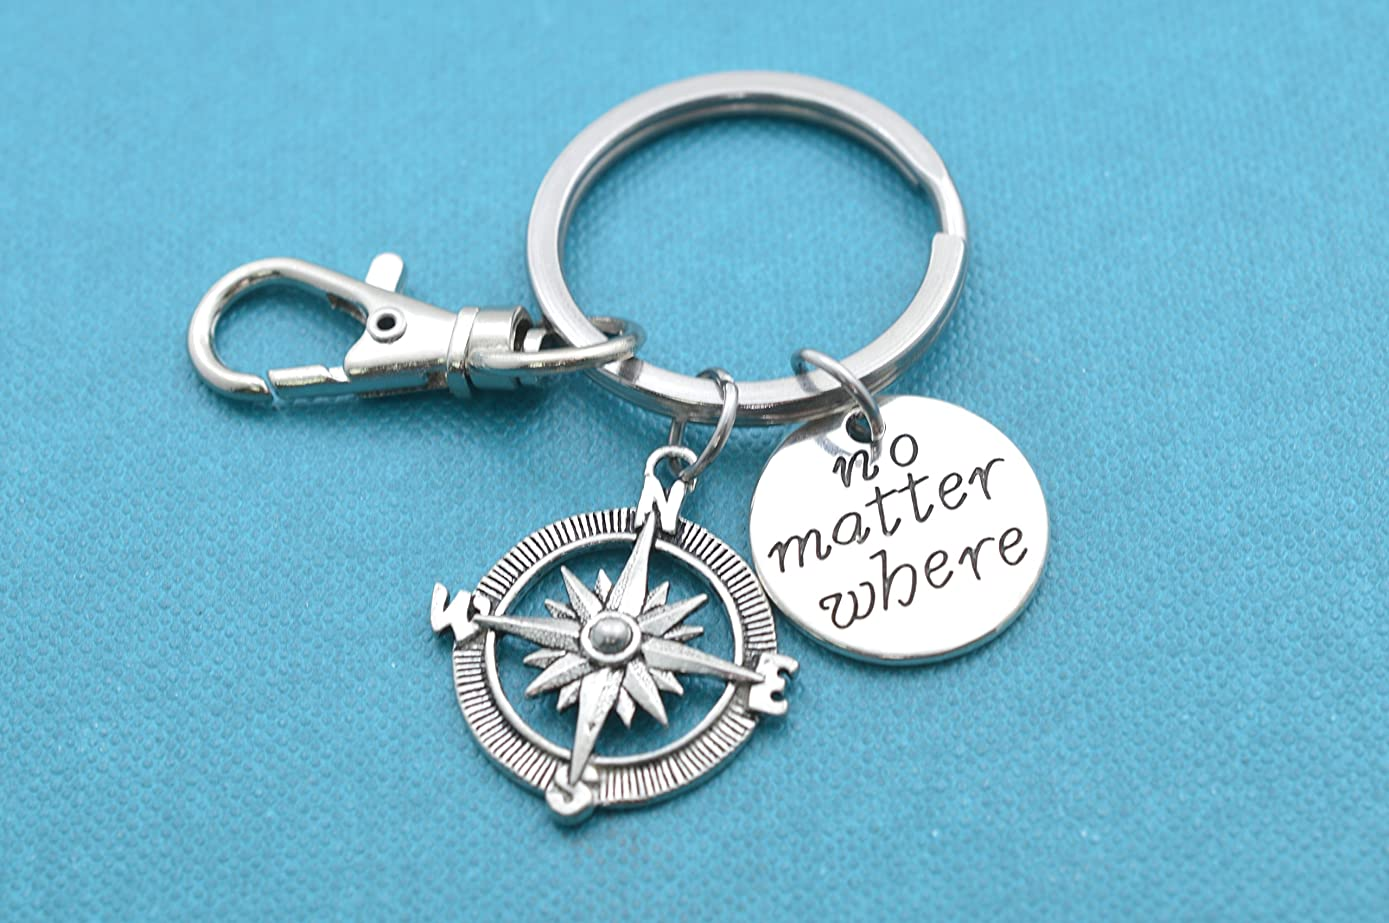 No matter where keychain with silver toned metal word tag on stainless steel key ring and snap hook. Gift for him. Gift for her.